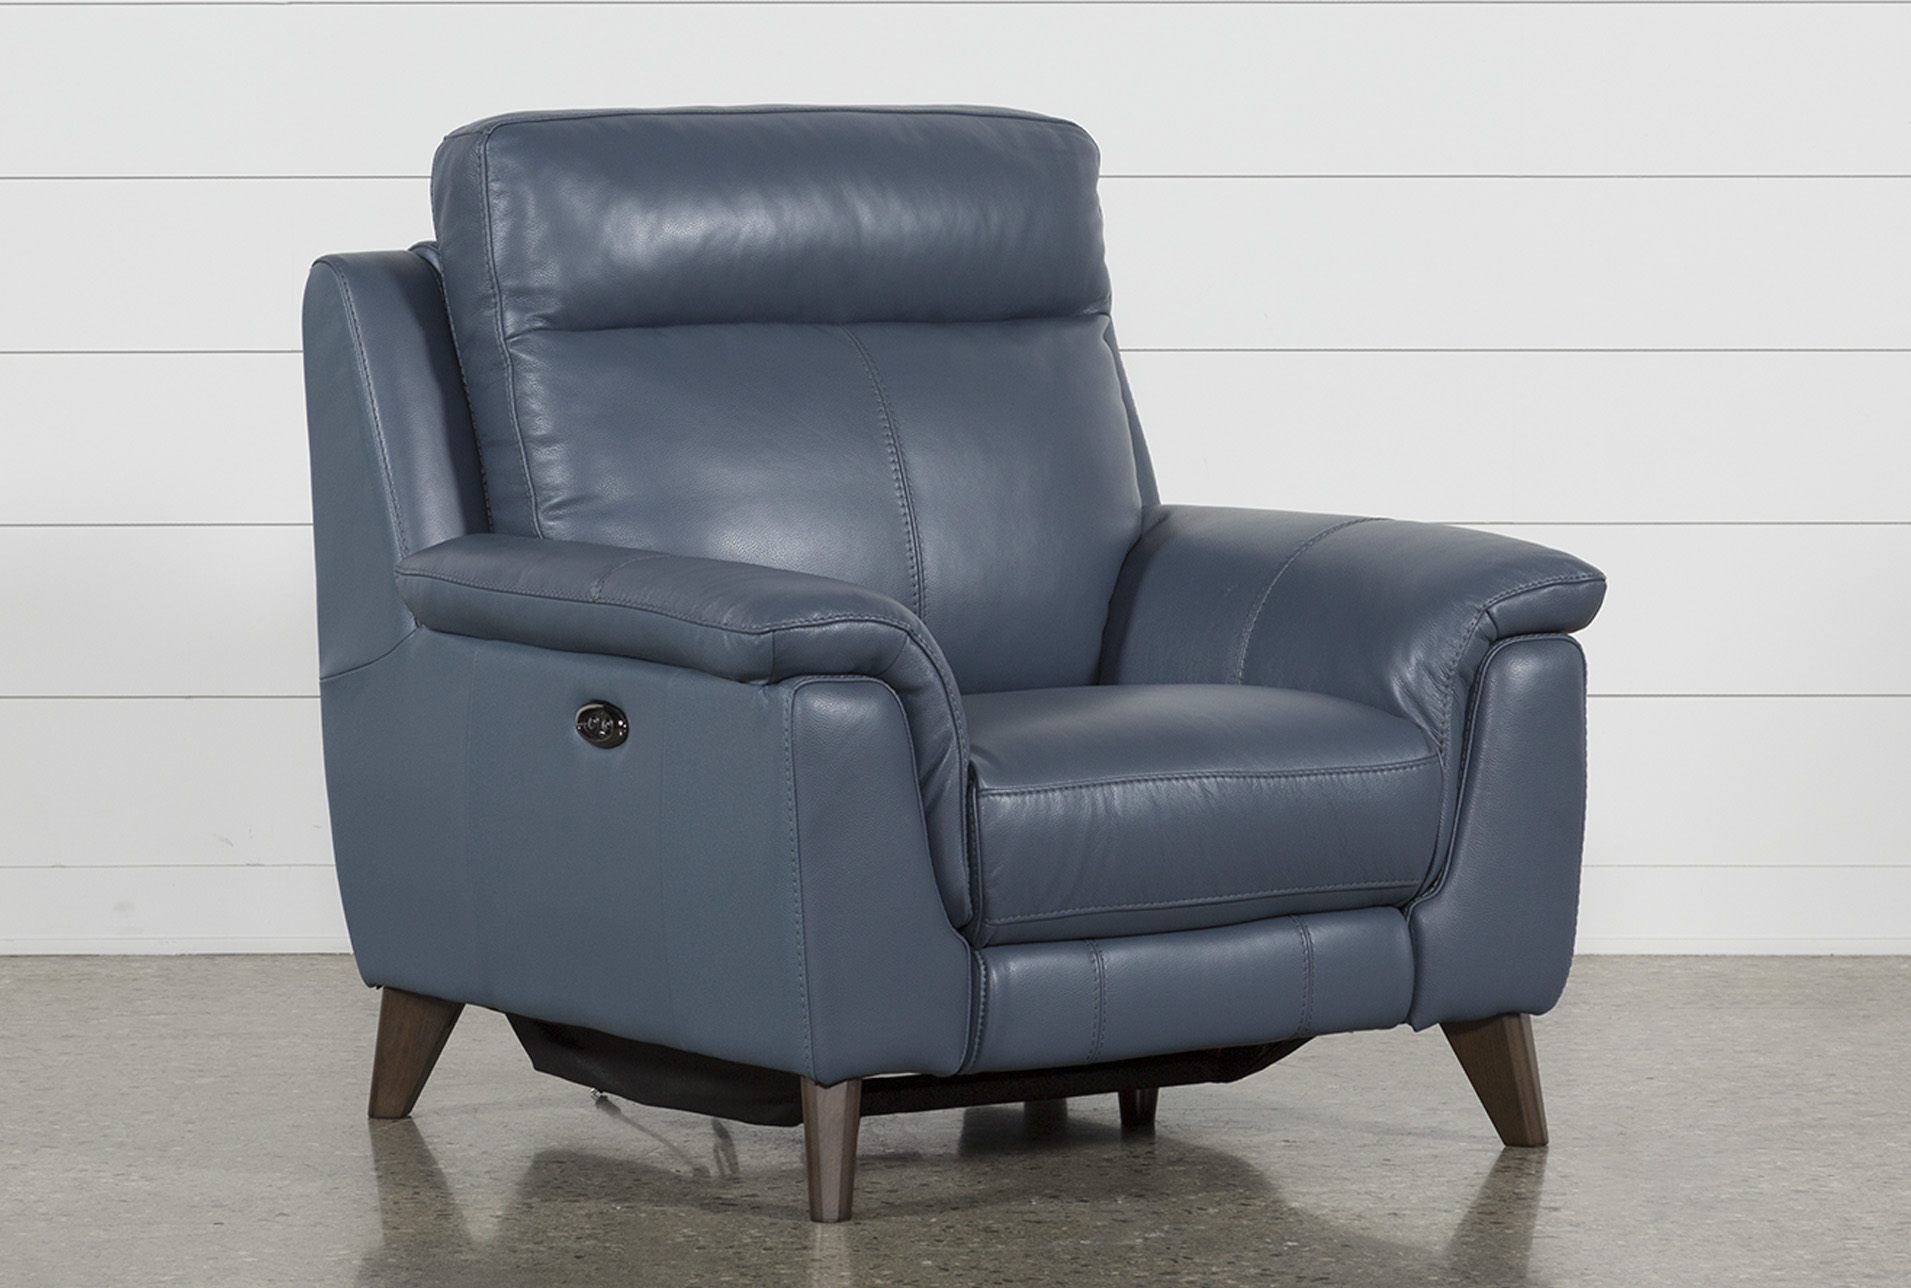 Superbe Moana Blue Leather Power Reclining Chair With Usb (Qty: 1) Has Been  Successfully Added To Your Cart.